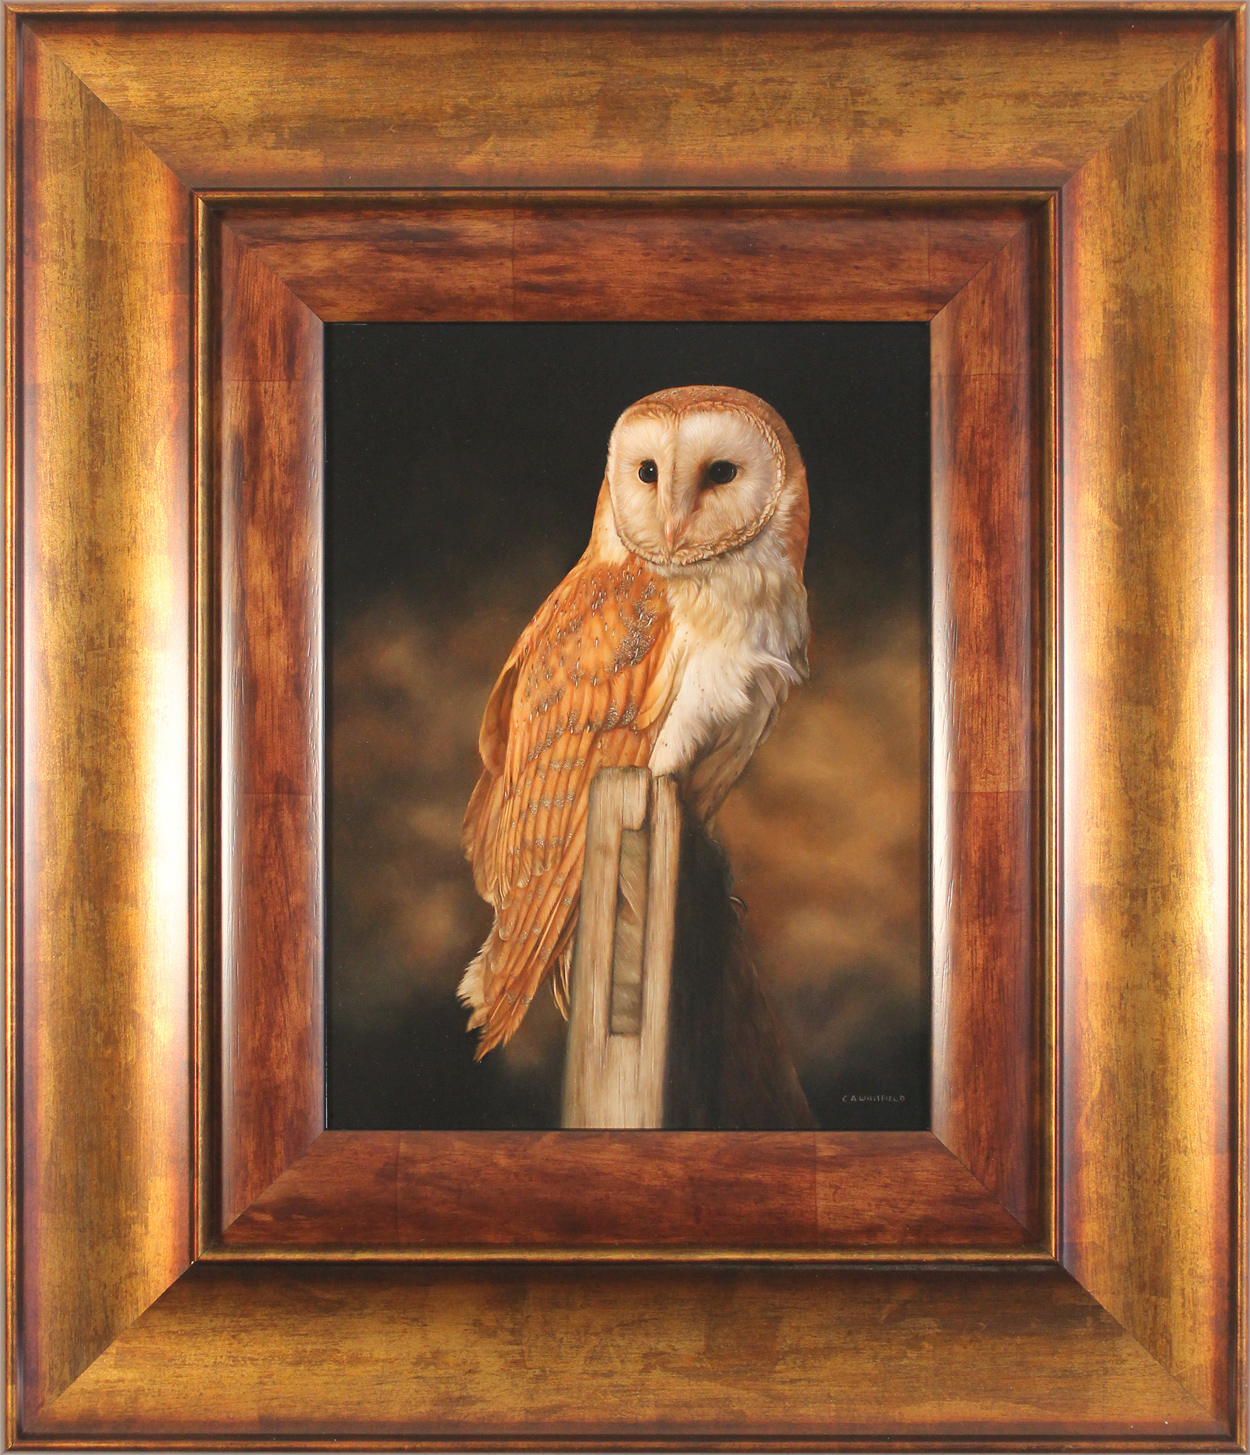 Carl Whitfield, Original oil painting on panel, Barn Owl, click to enlarge